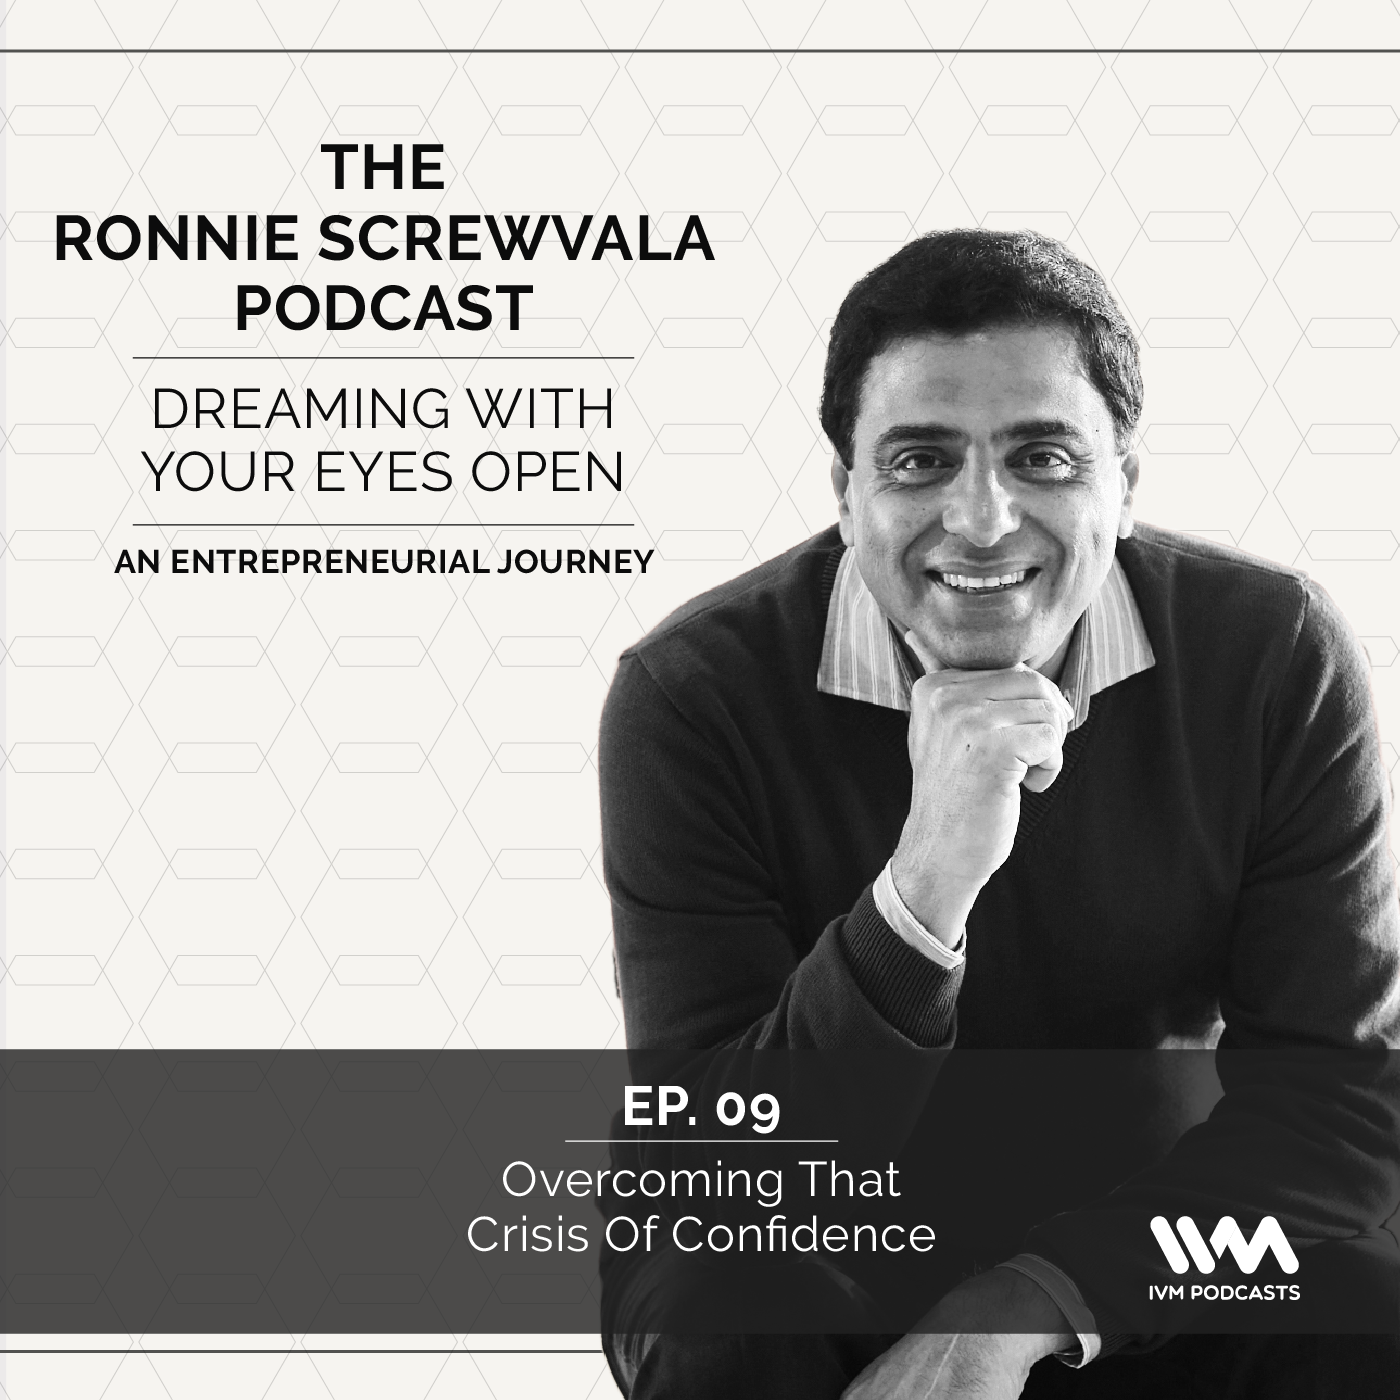 Ep. 09: Overcoming That Crisis Of Confidence